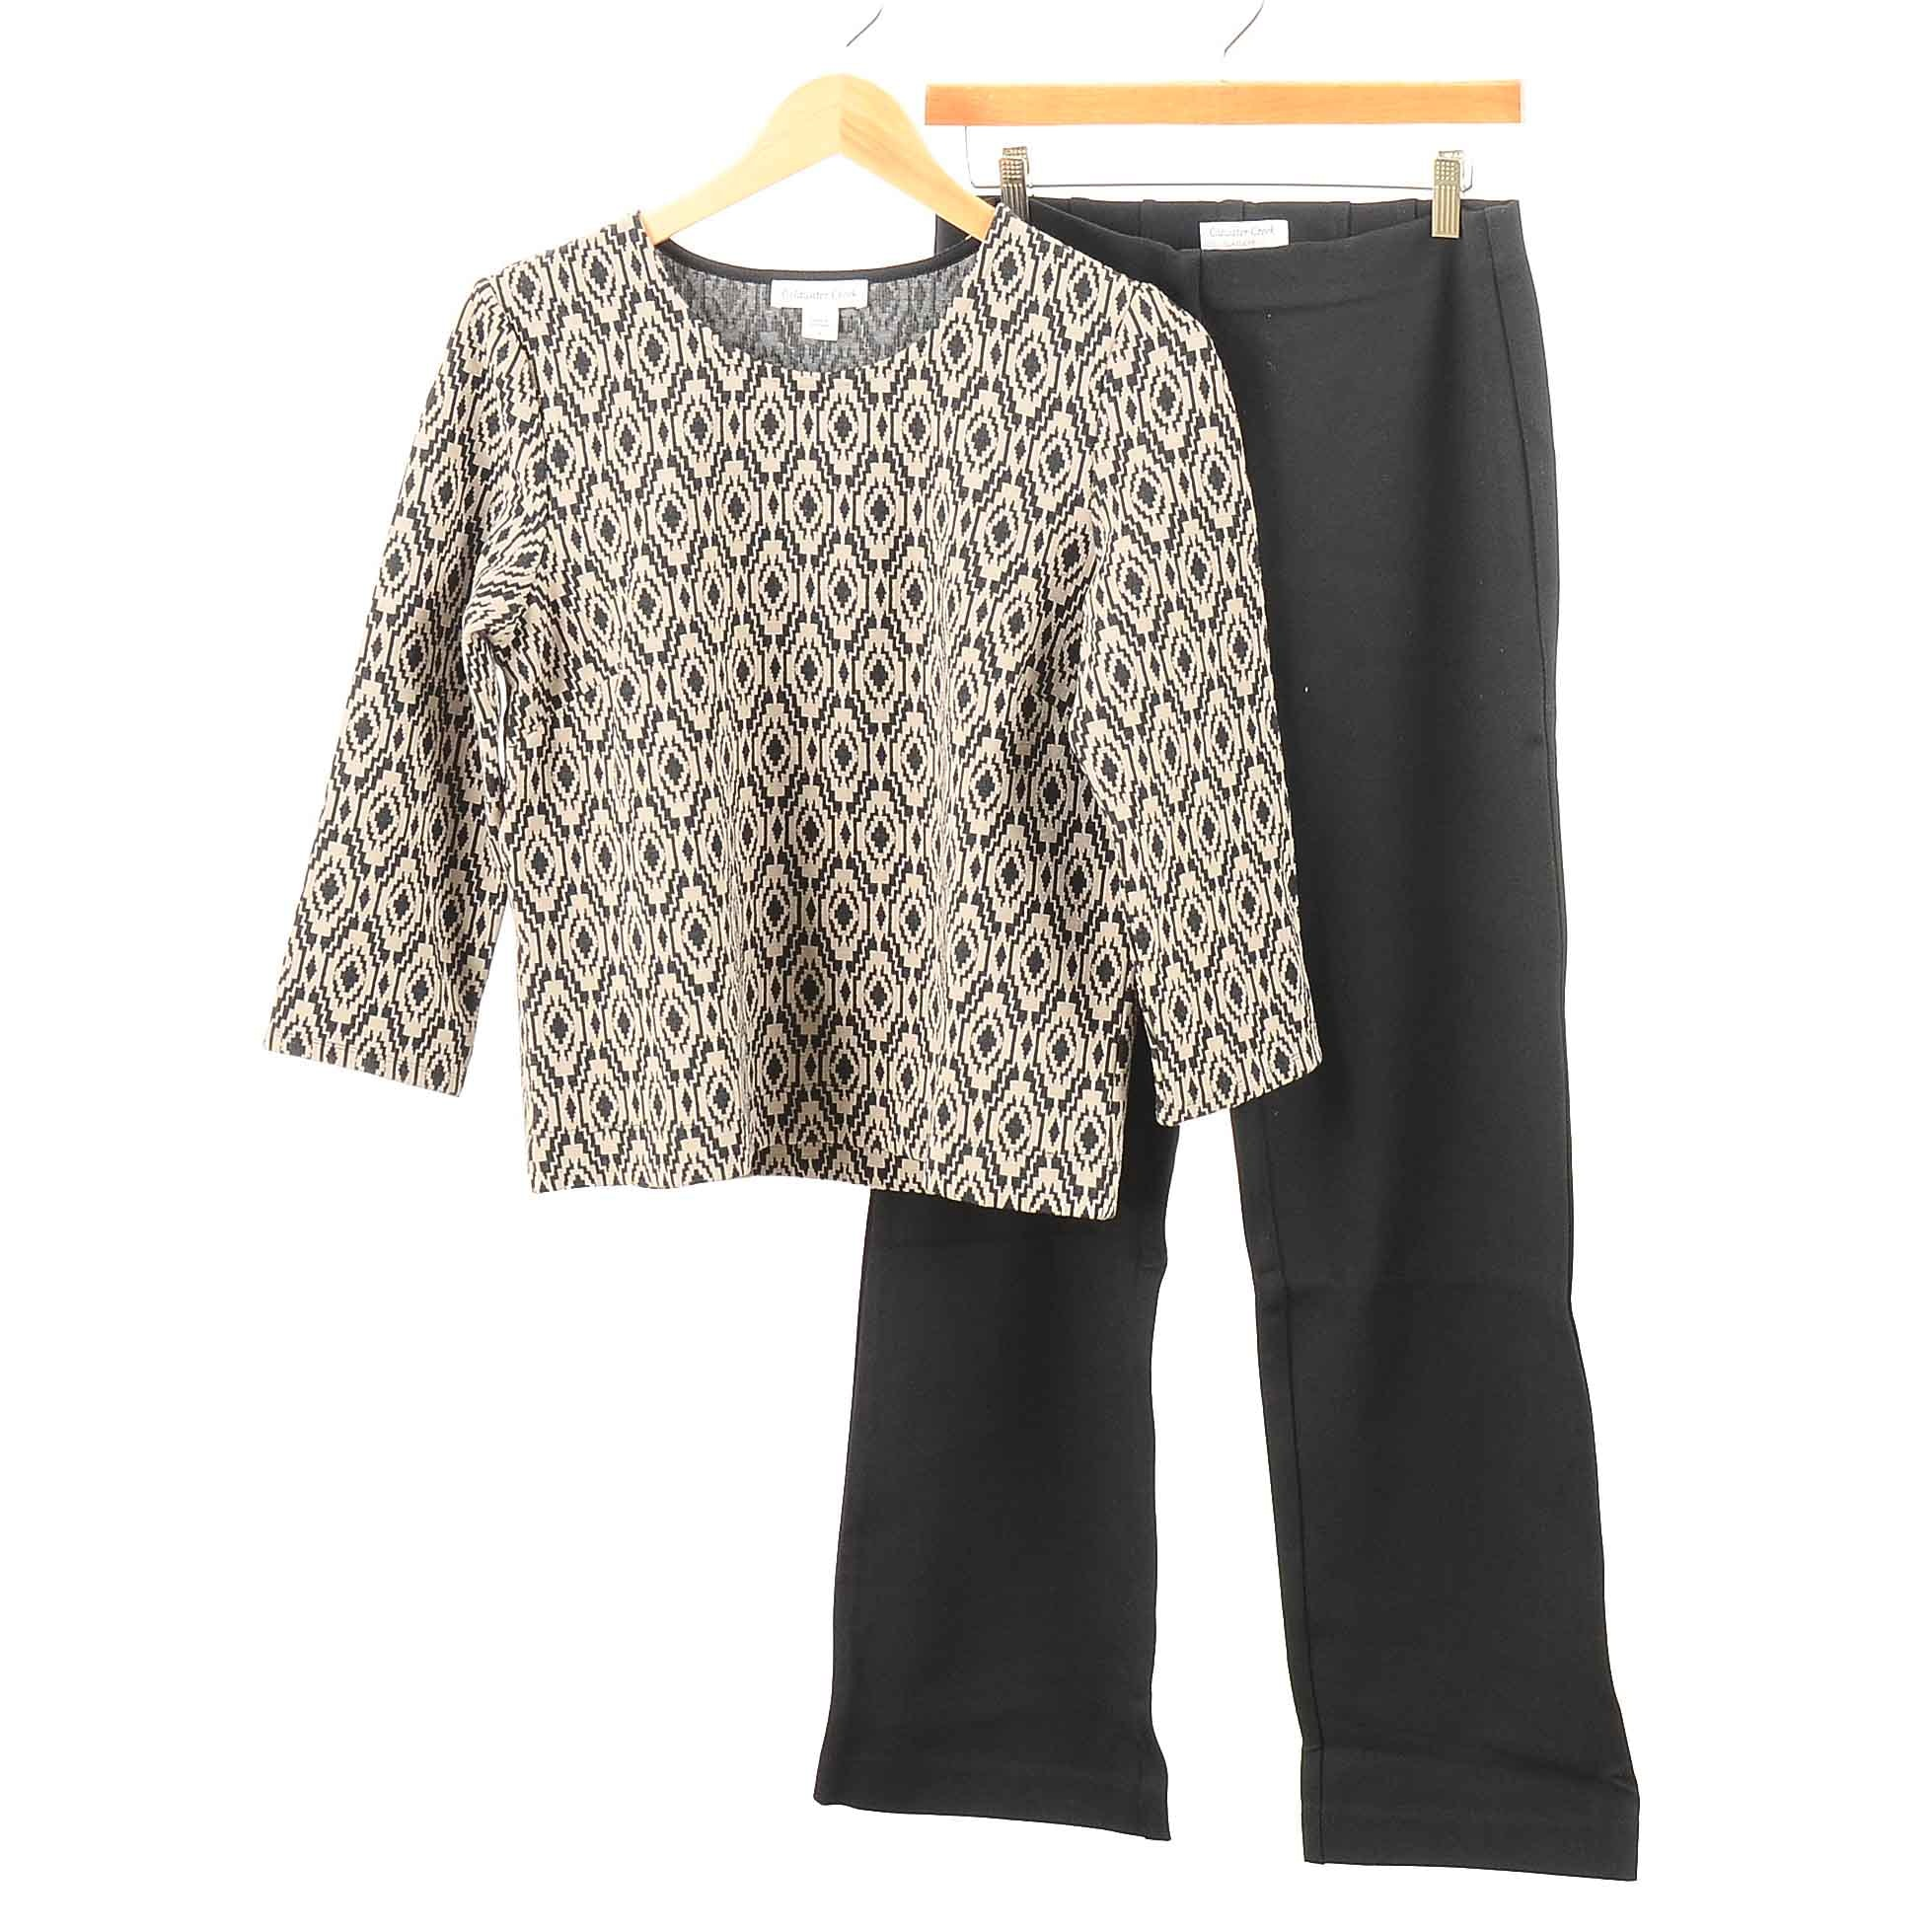 Women's Coldwater Creek Blouse and Pants